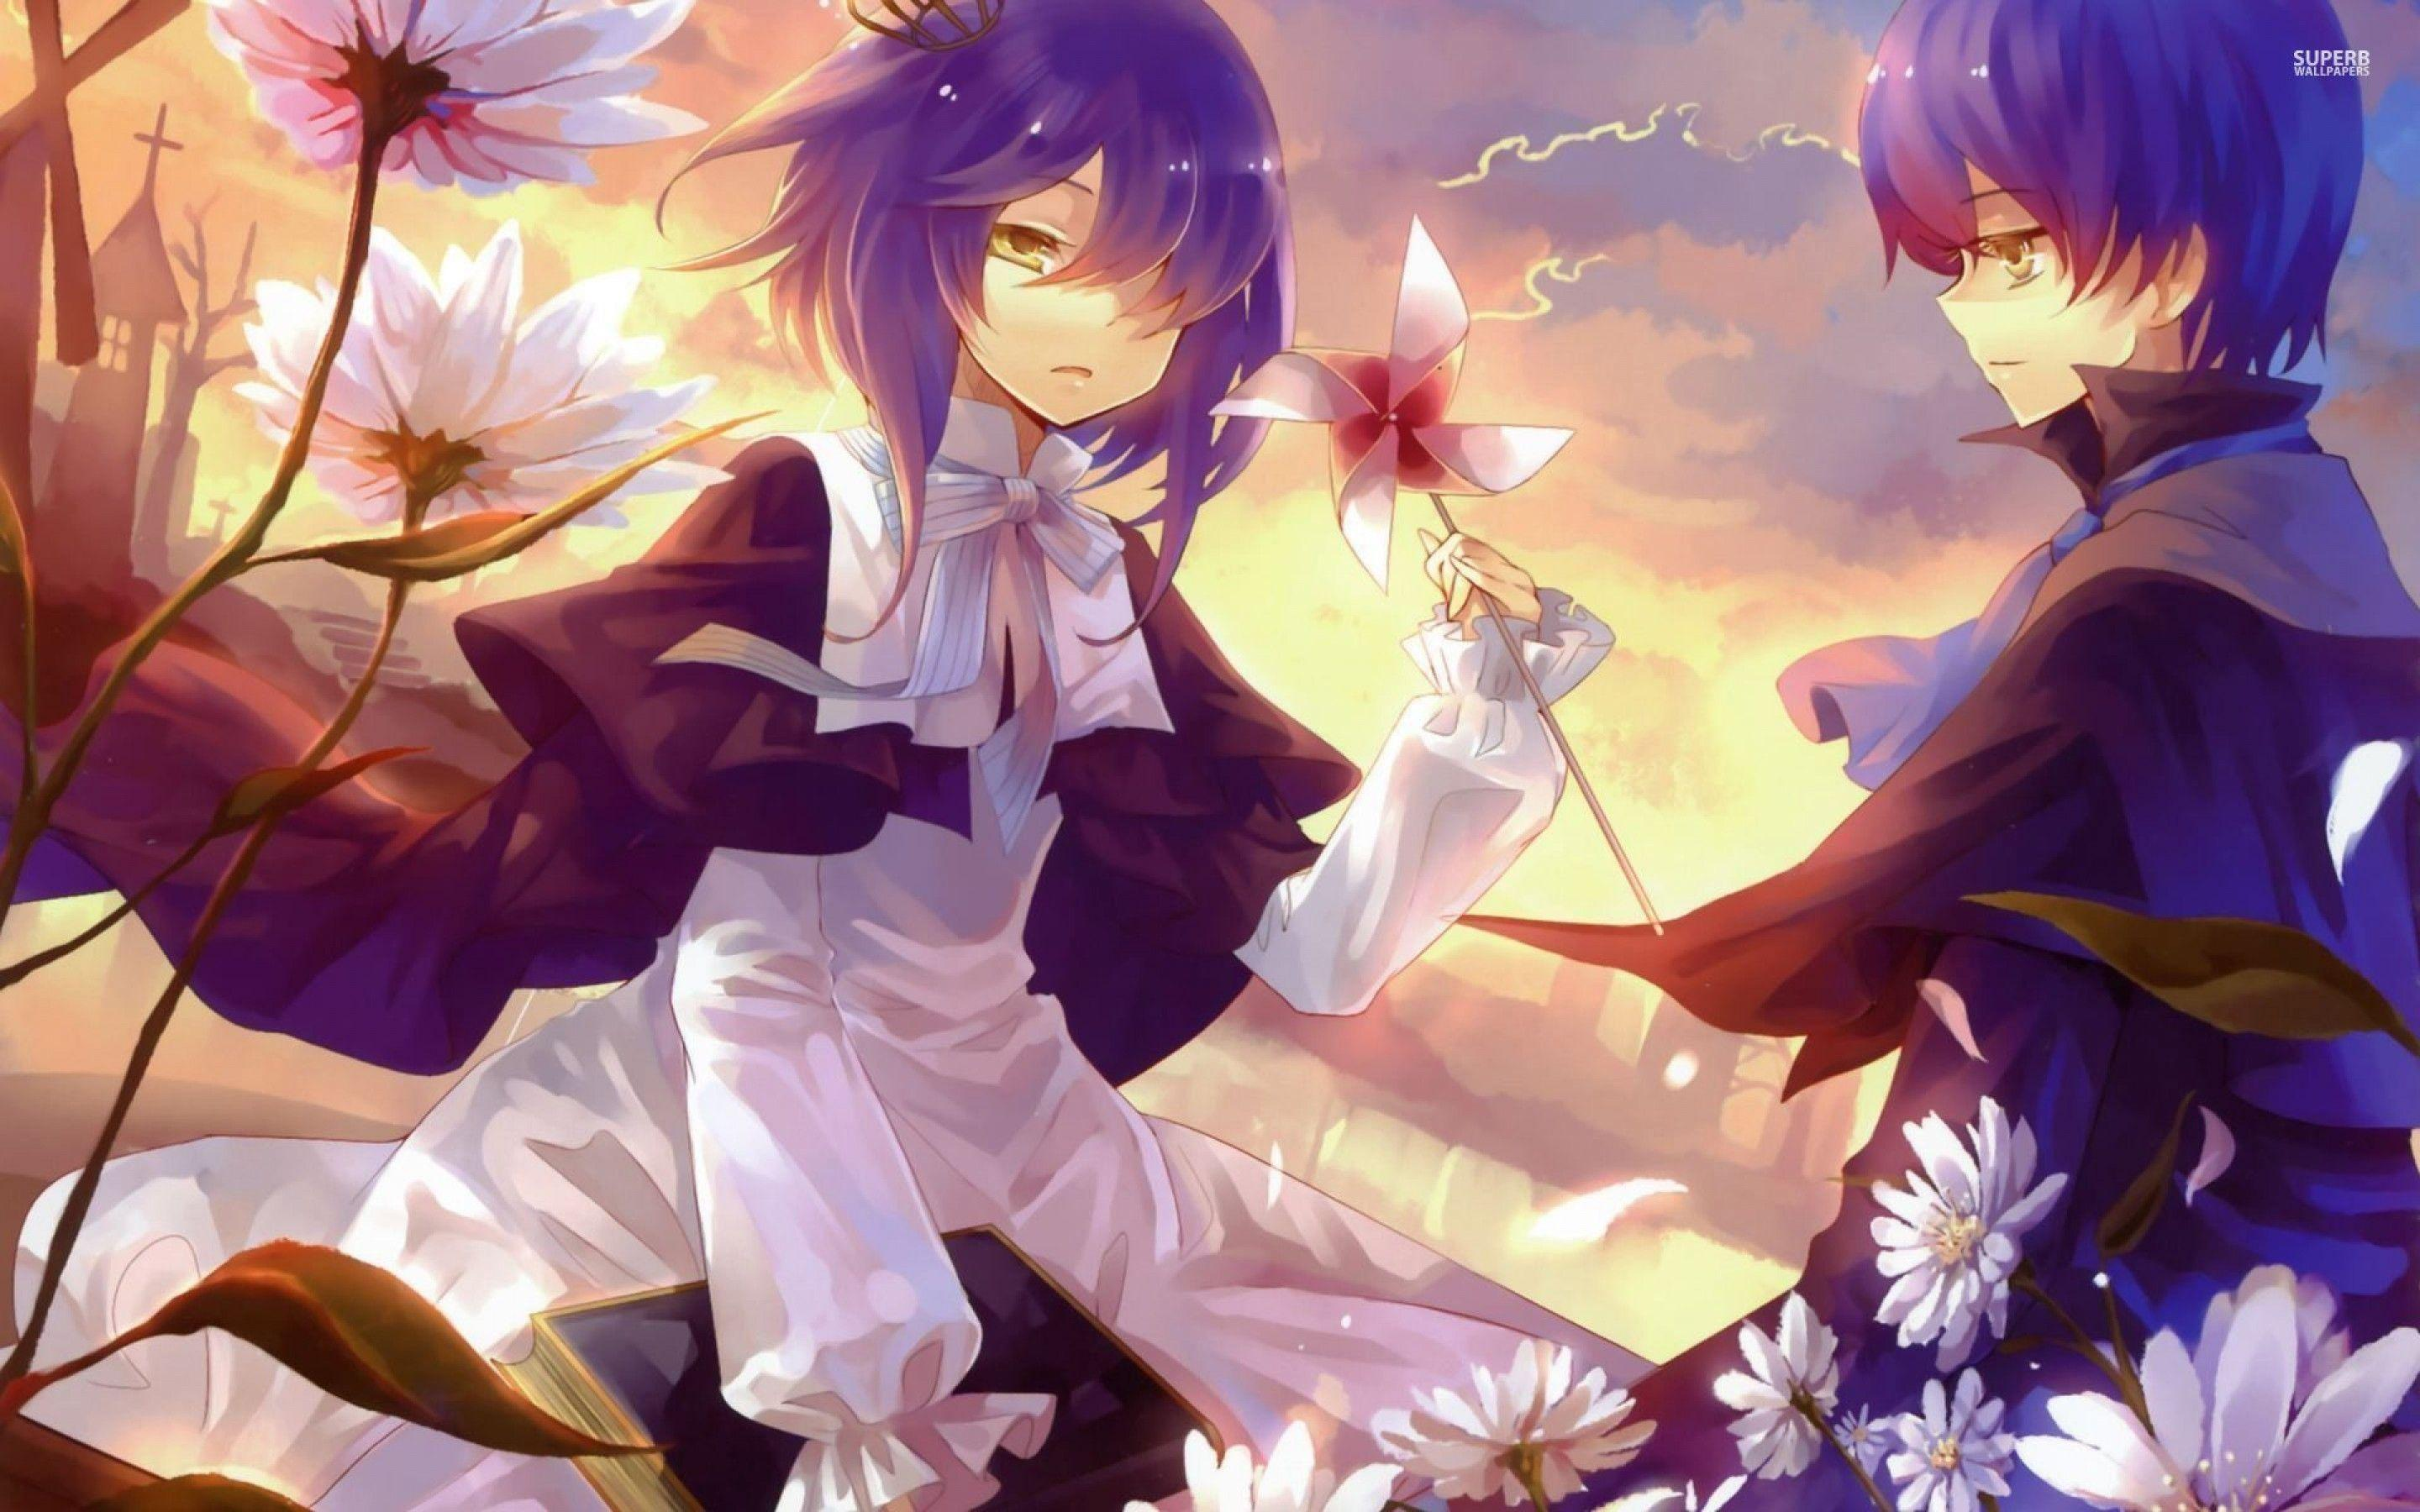 Anime Girl And Boy Wallpapers - Wallpaper Cave